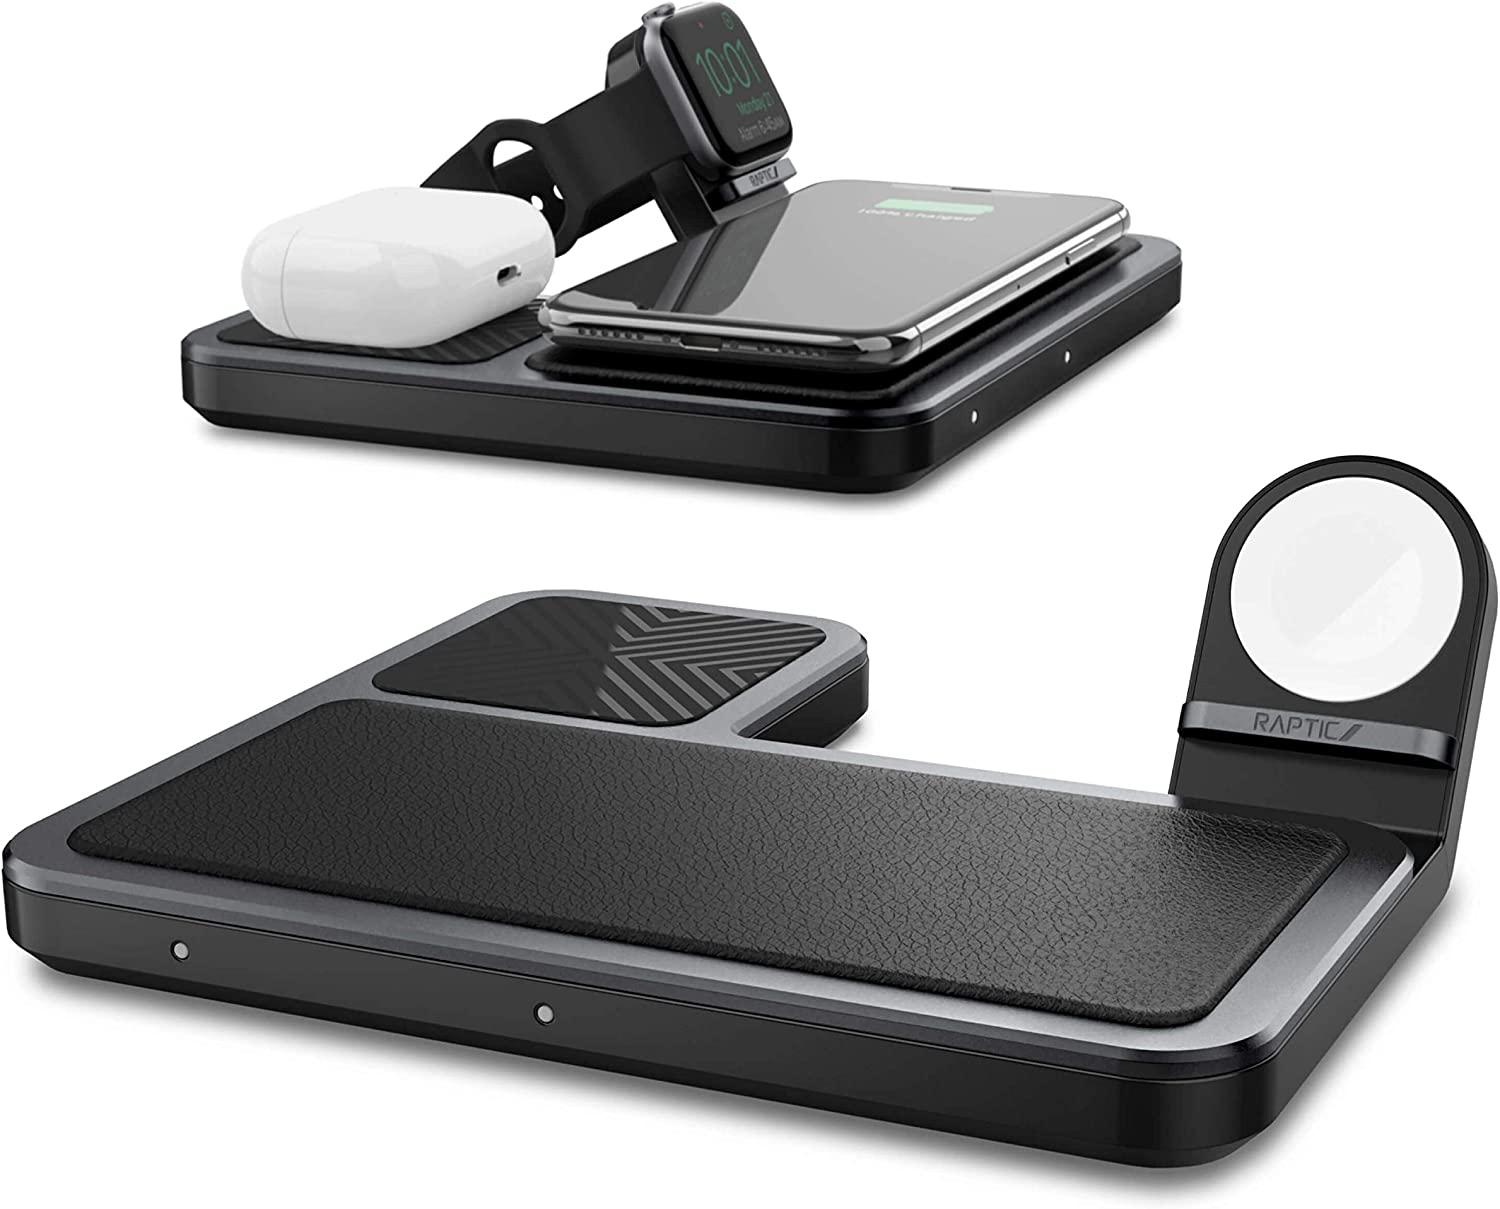 Raptic Trio Wireless Charger, 3 in 1 Qi Certified, 10W Fast Charging Station Dock, Compatible with Apple Watch Series 5 4 3 2 1, iPhone 12, iPhone 11 and AirPods 2 & Pro (Black)